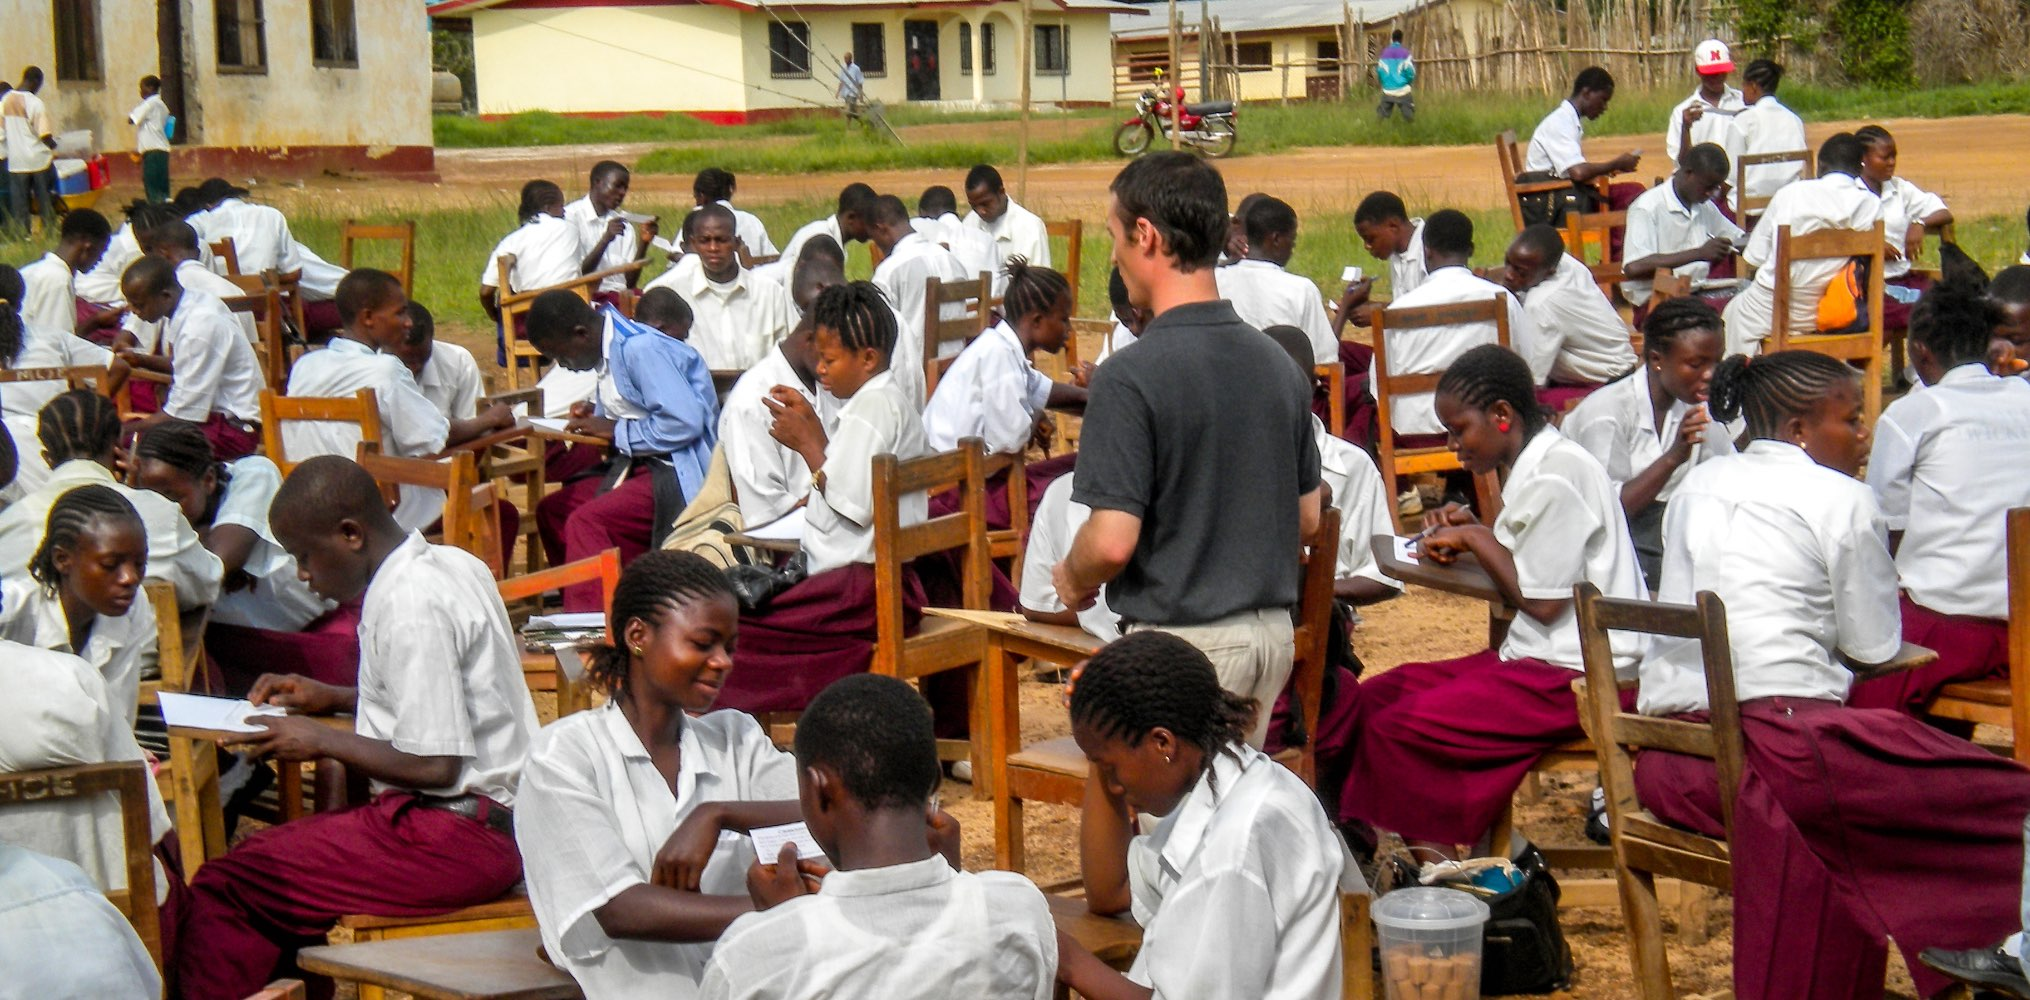 SIT student teaching an outdoor classroom of students in Liberia